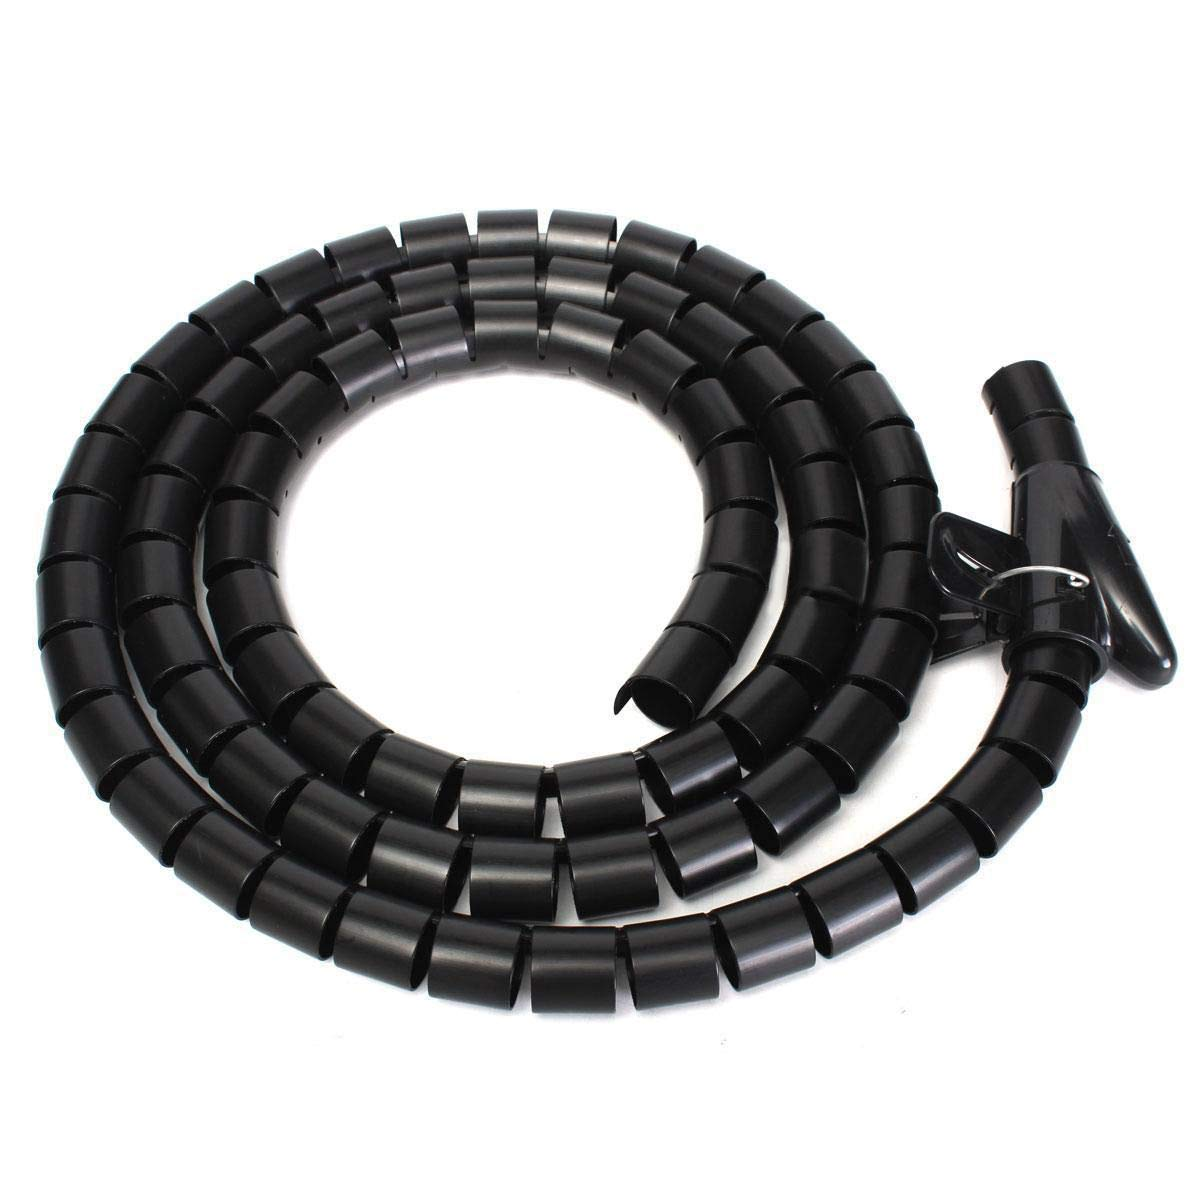 2M 10mm//25mm Spiral Cable Wrap Tidy Cord Wire Banding Storage Organizer Tools